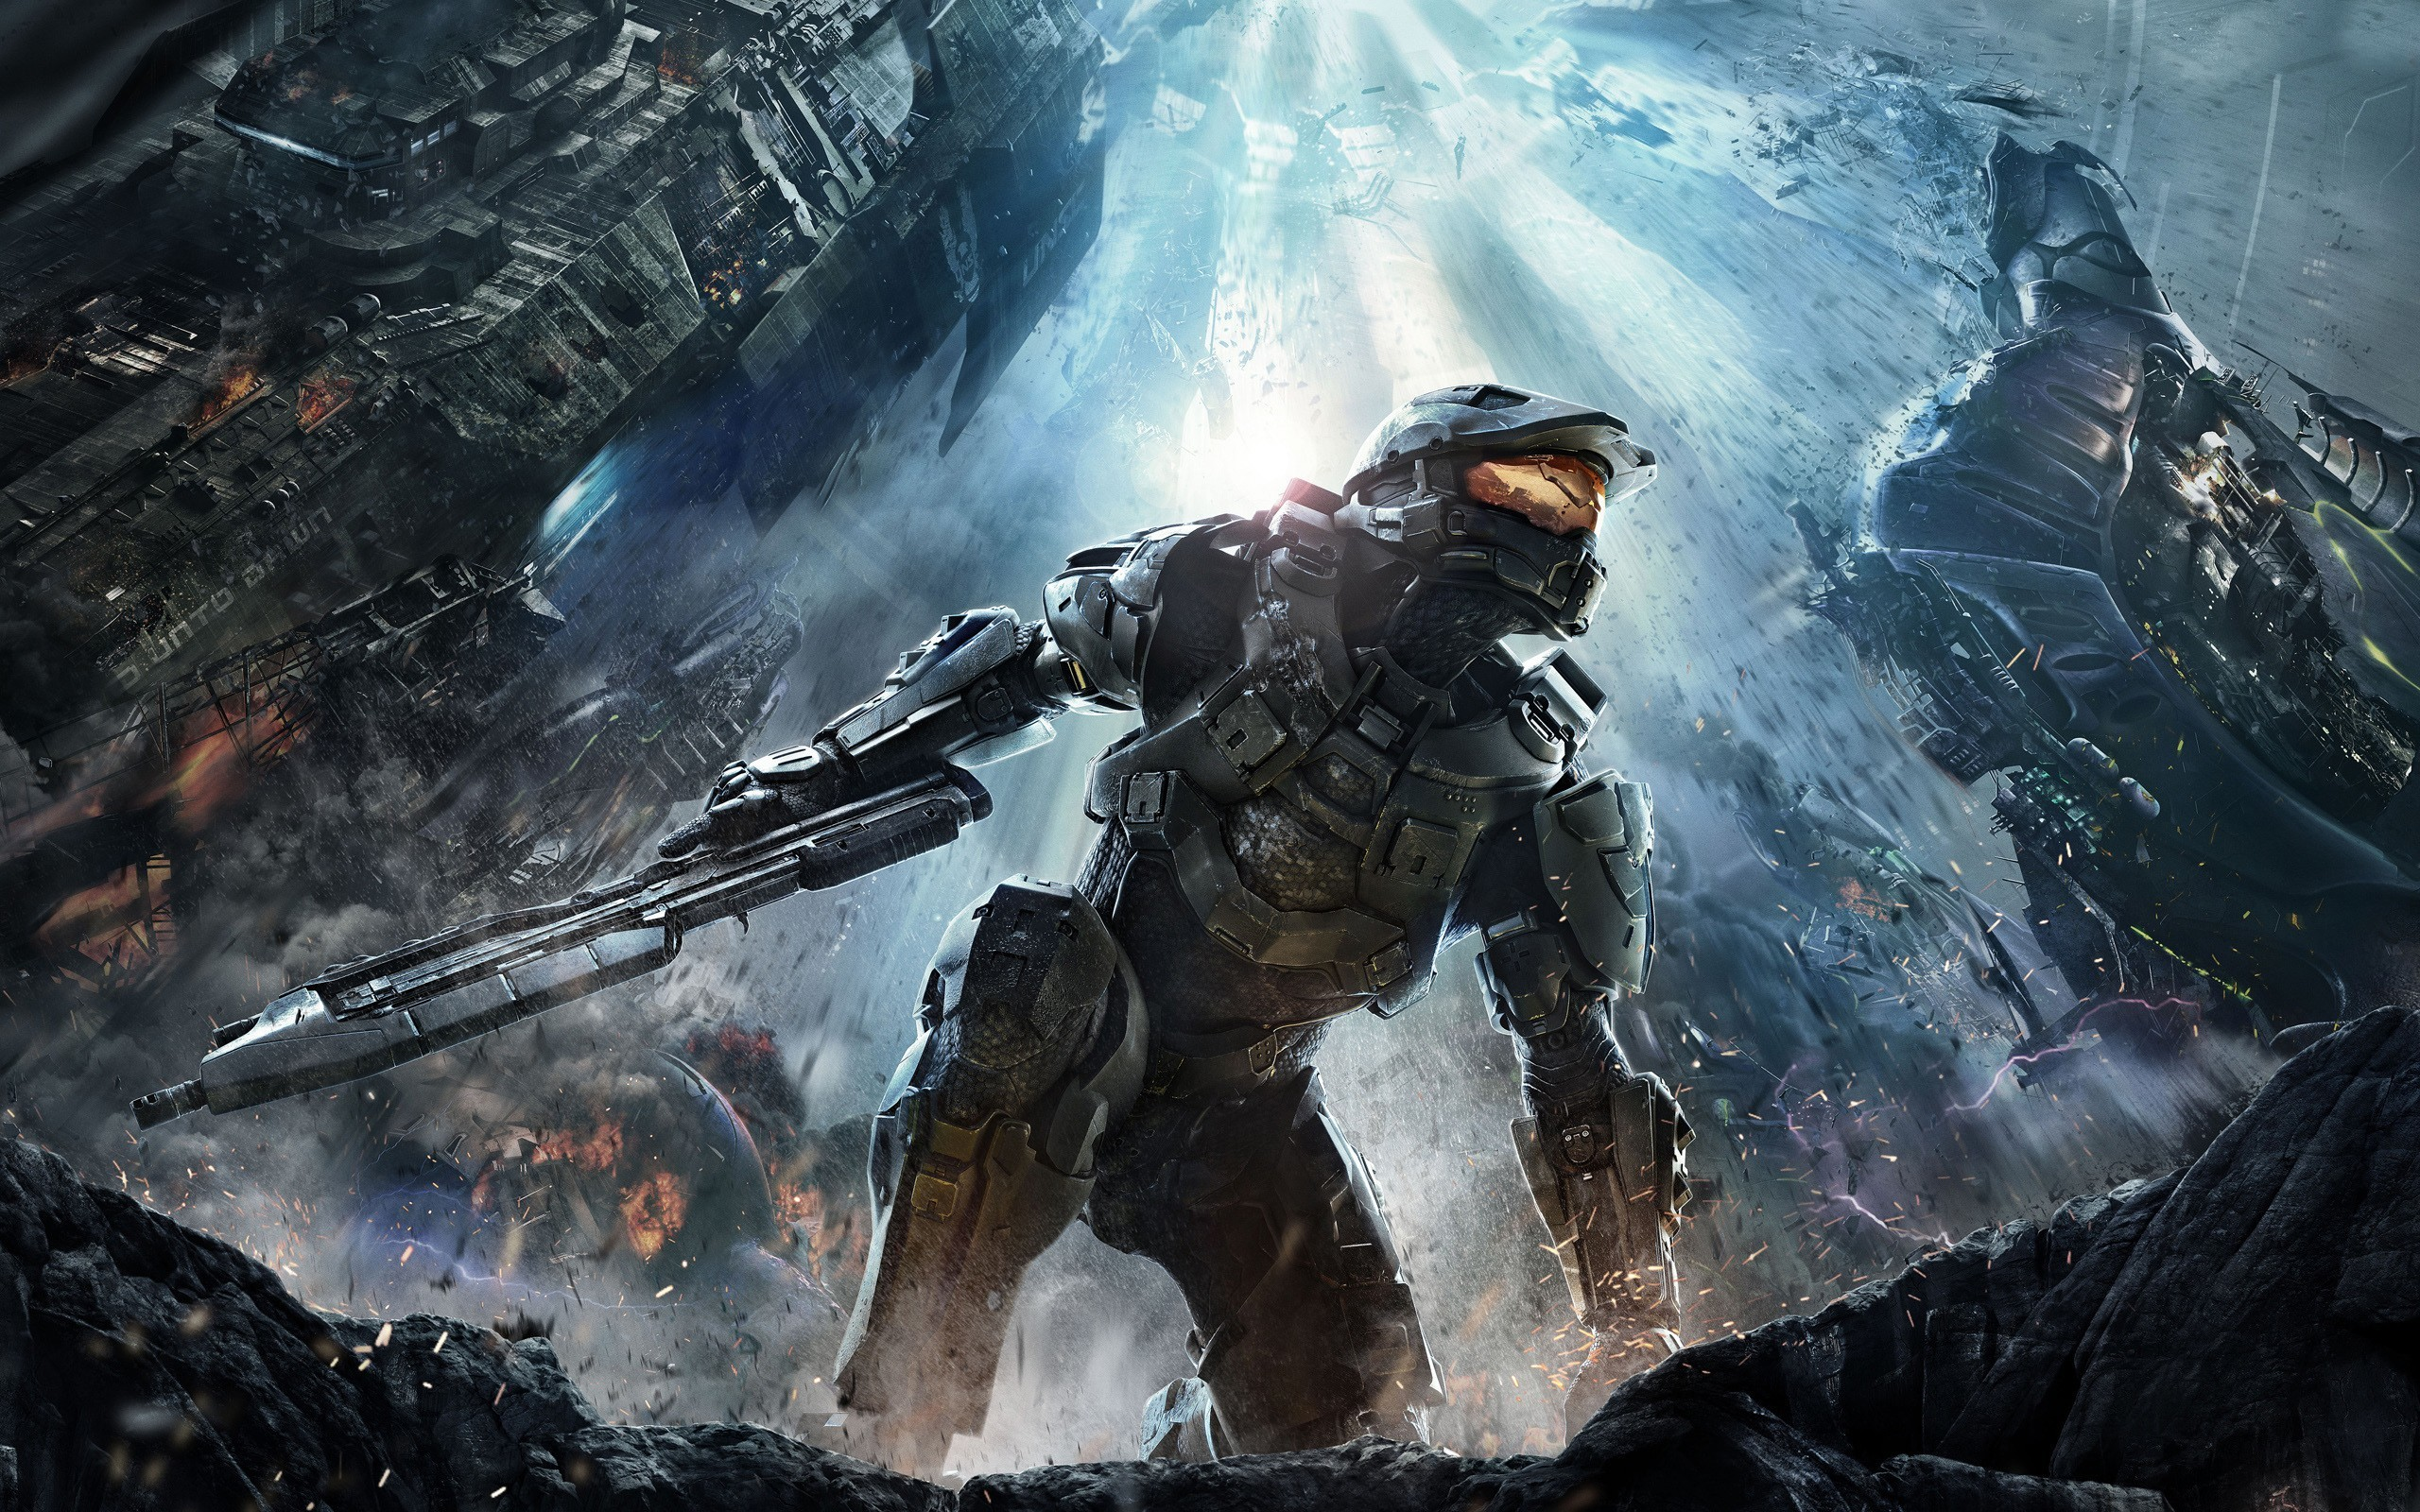 Halo 5 wallpapers 1080p 75 images - Halo 5 guardians wallpaper 1920x1080 ...